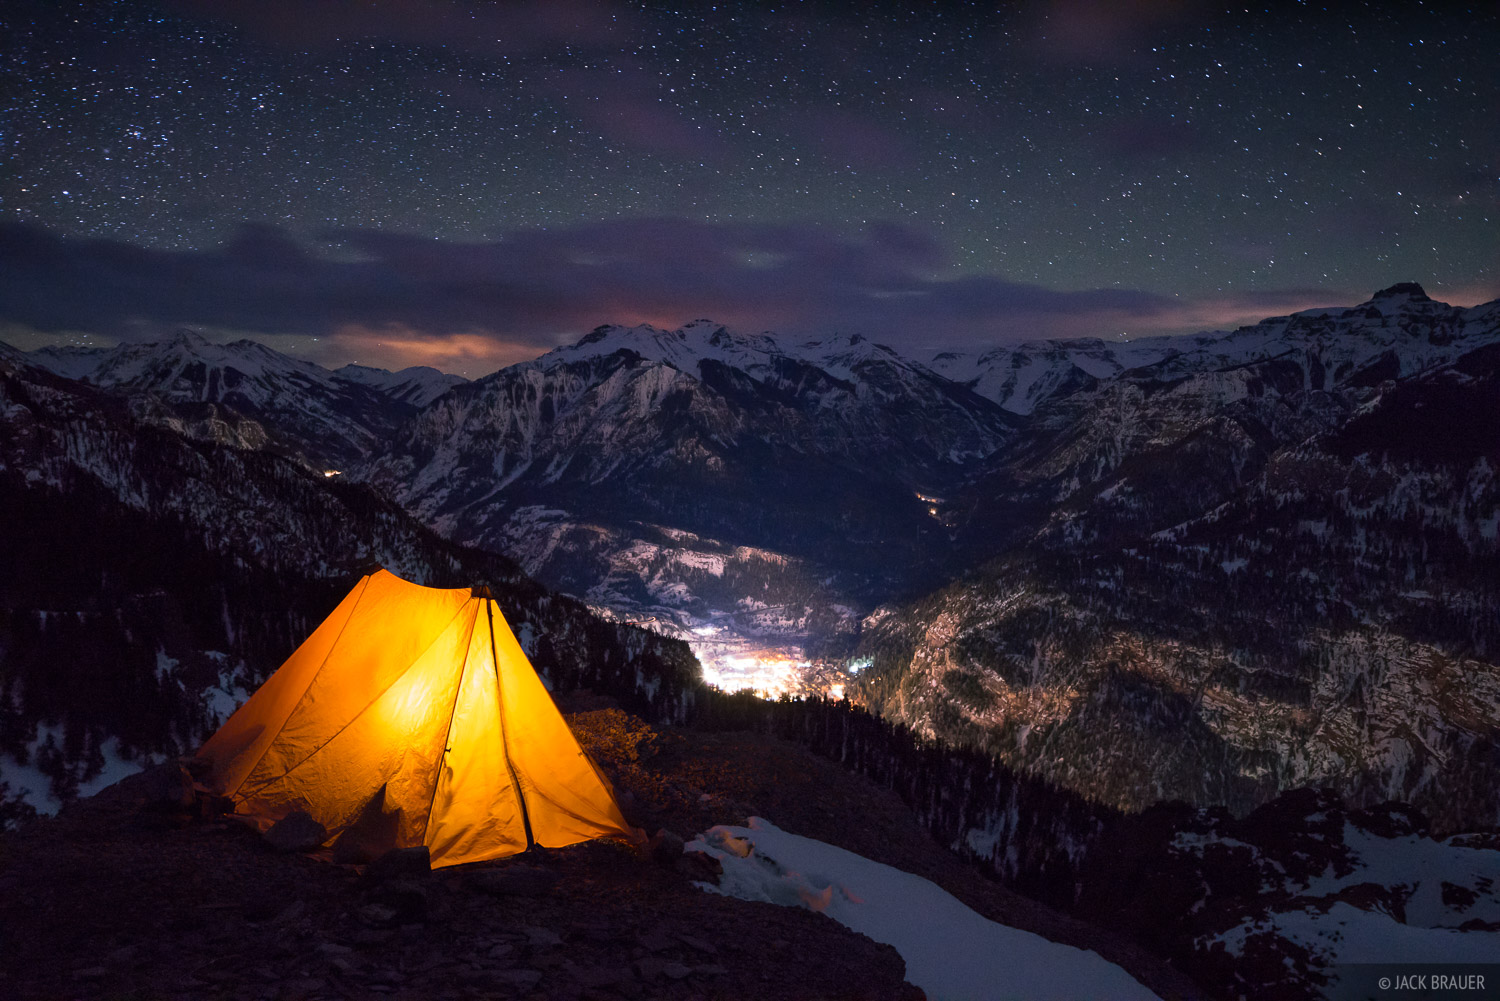 Nighttime overlooking Ouray, Colorado.